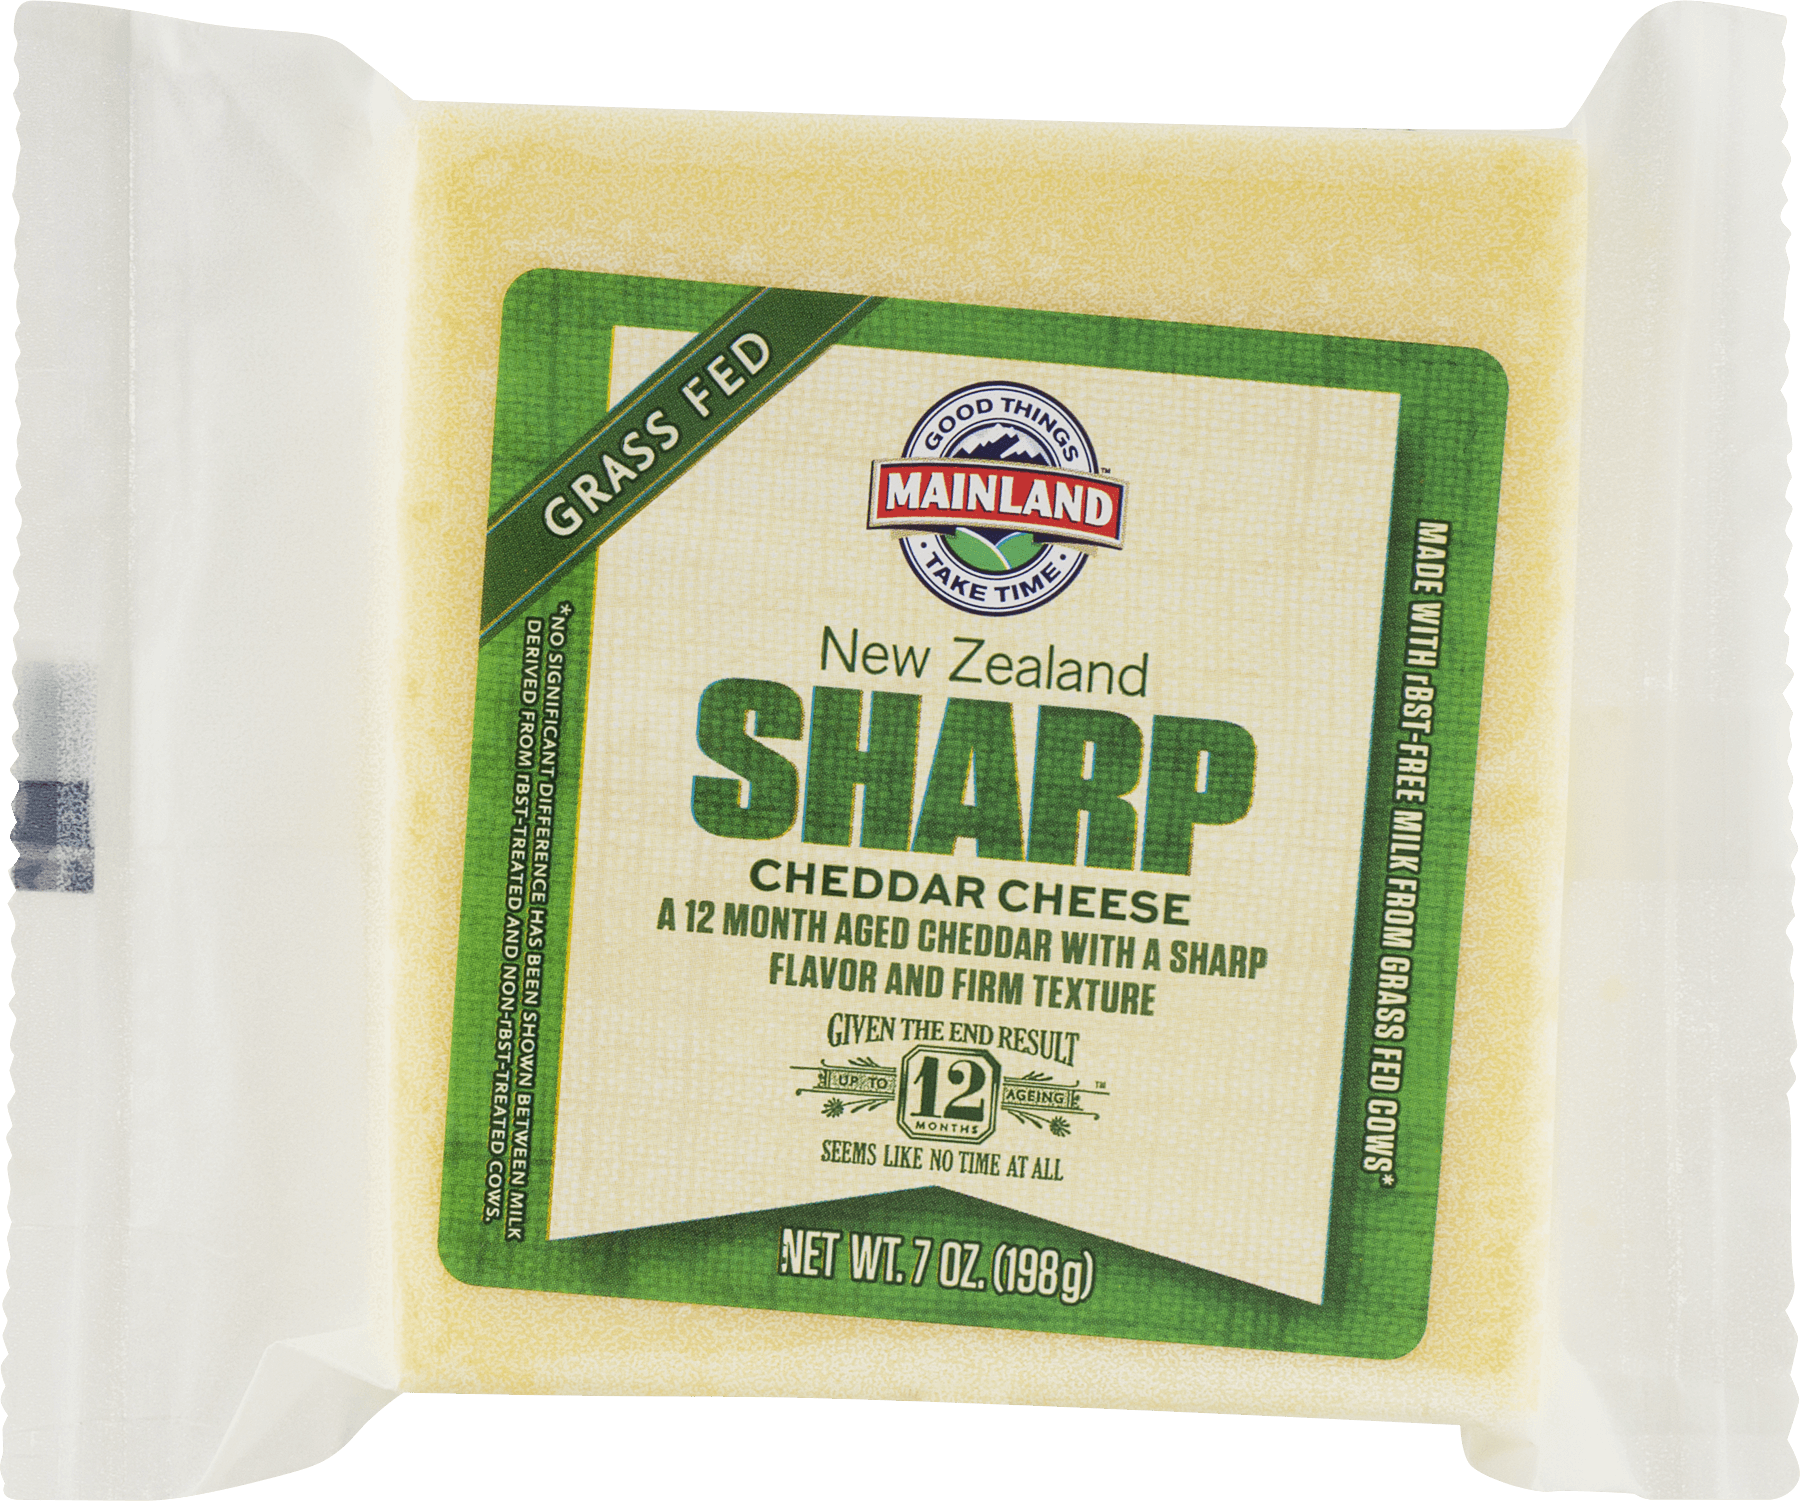 New Zealand Sharp Cheddar Cheese